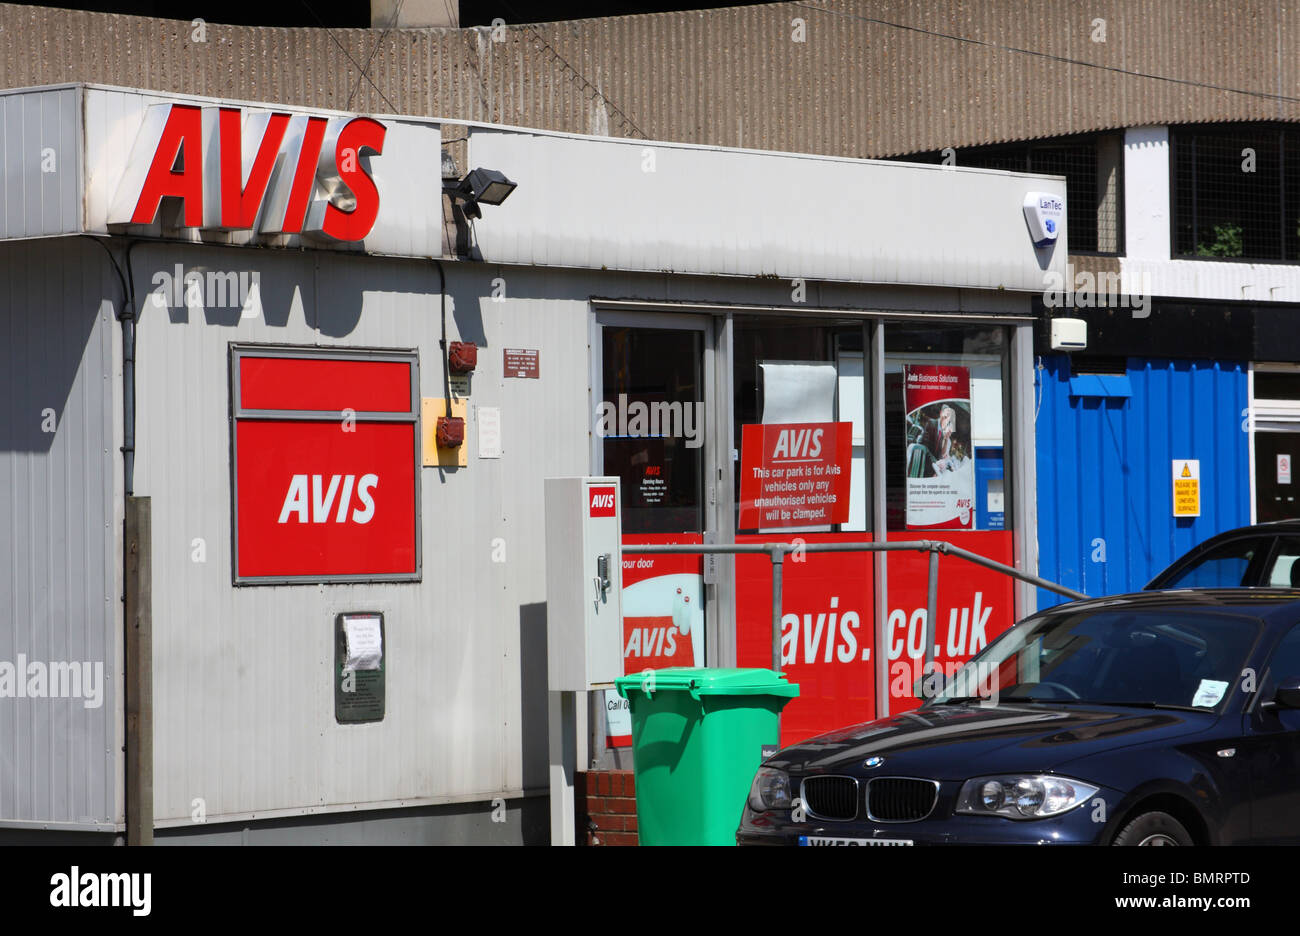 Avis Car Hire Cambridge Uk